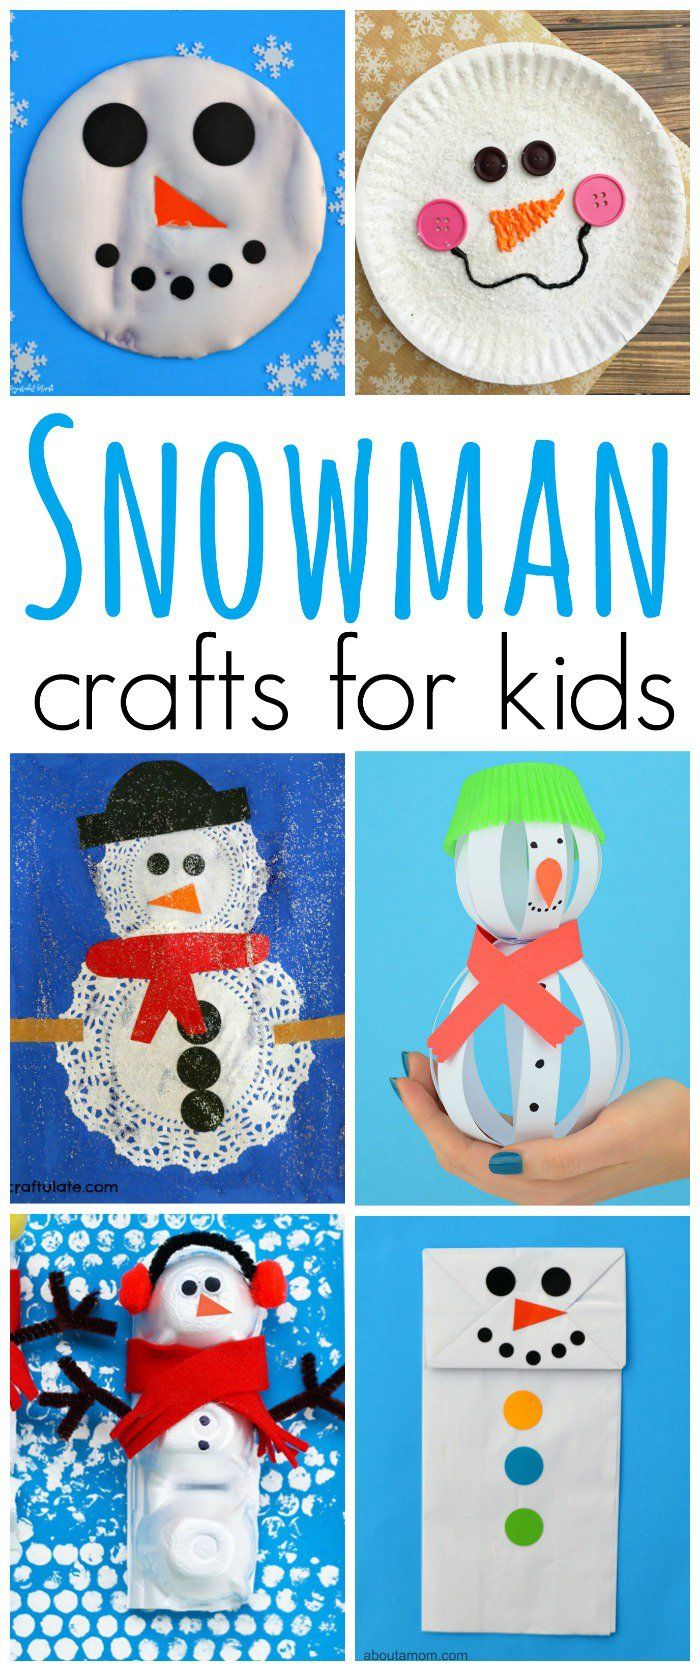 351 Best Crafts For Kids Images On Pinterest